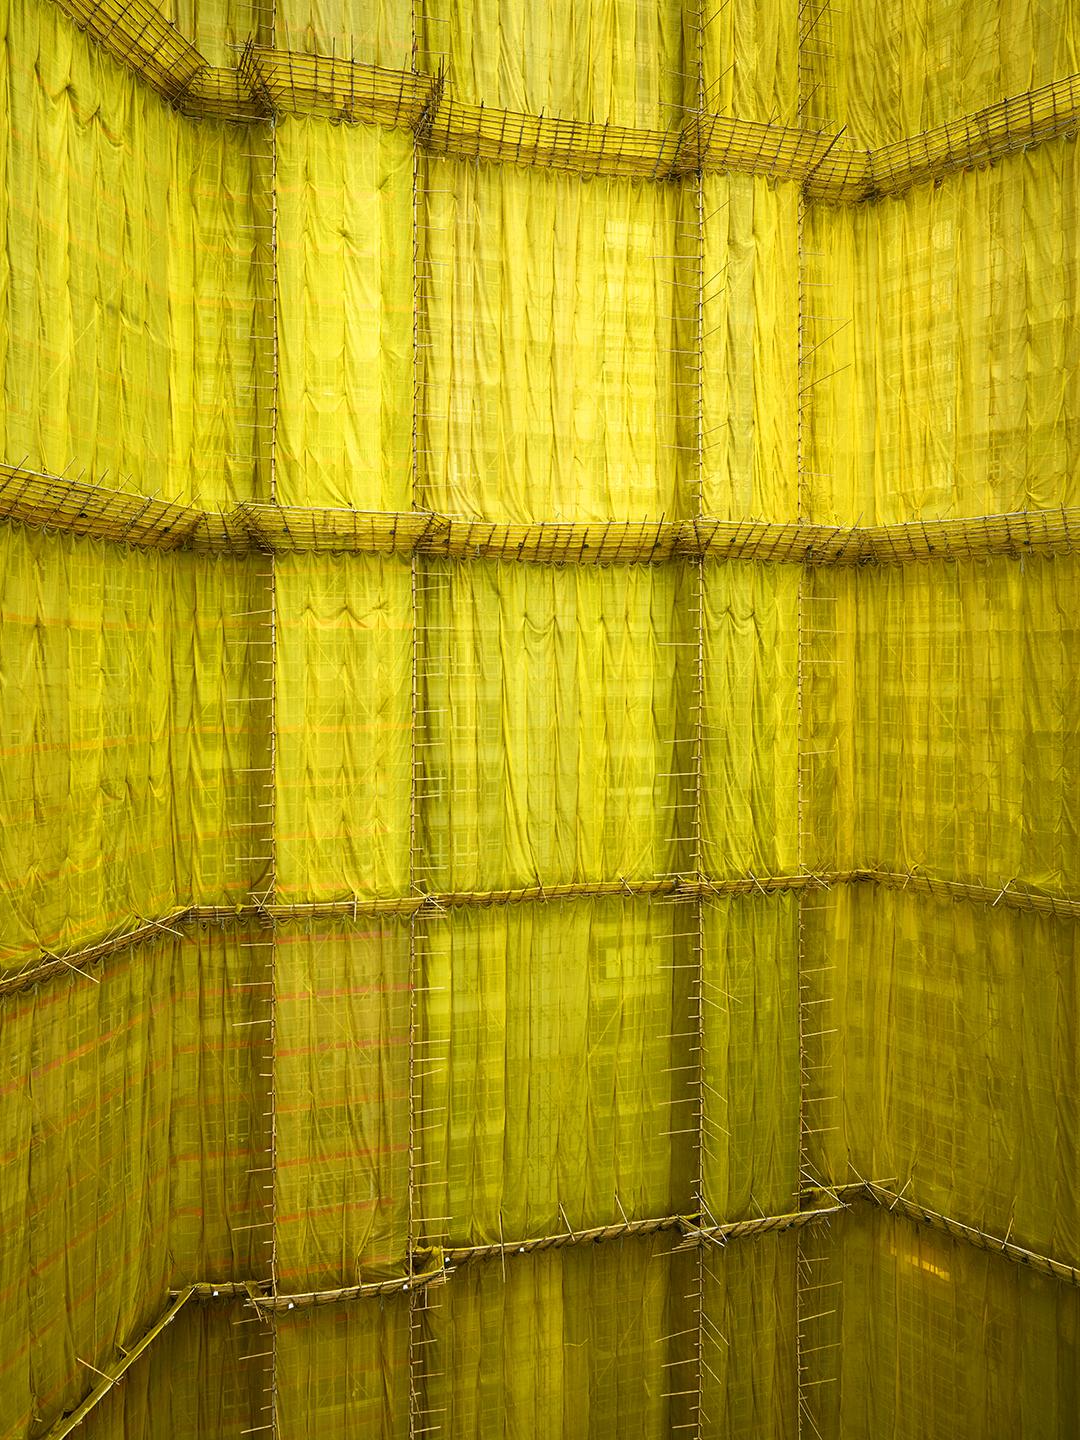 Yellow Cocoon #4, Hong Kong - 2011